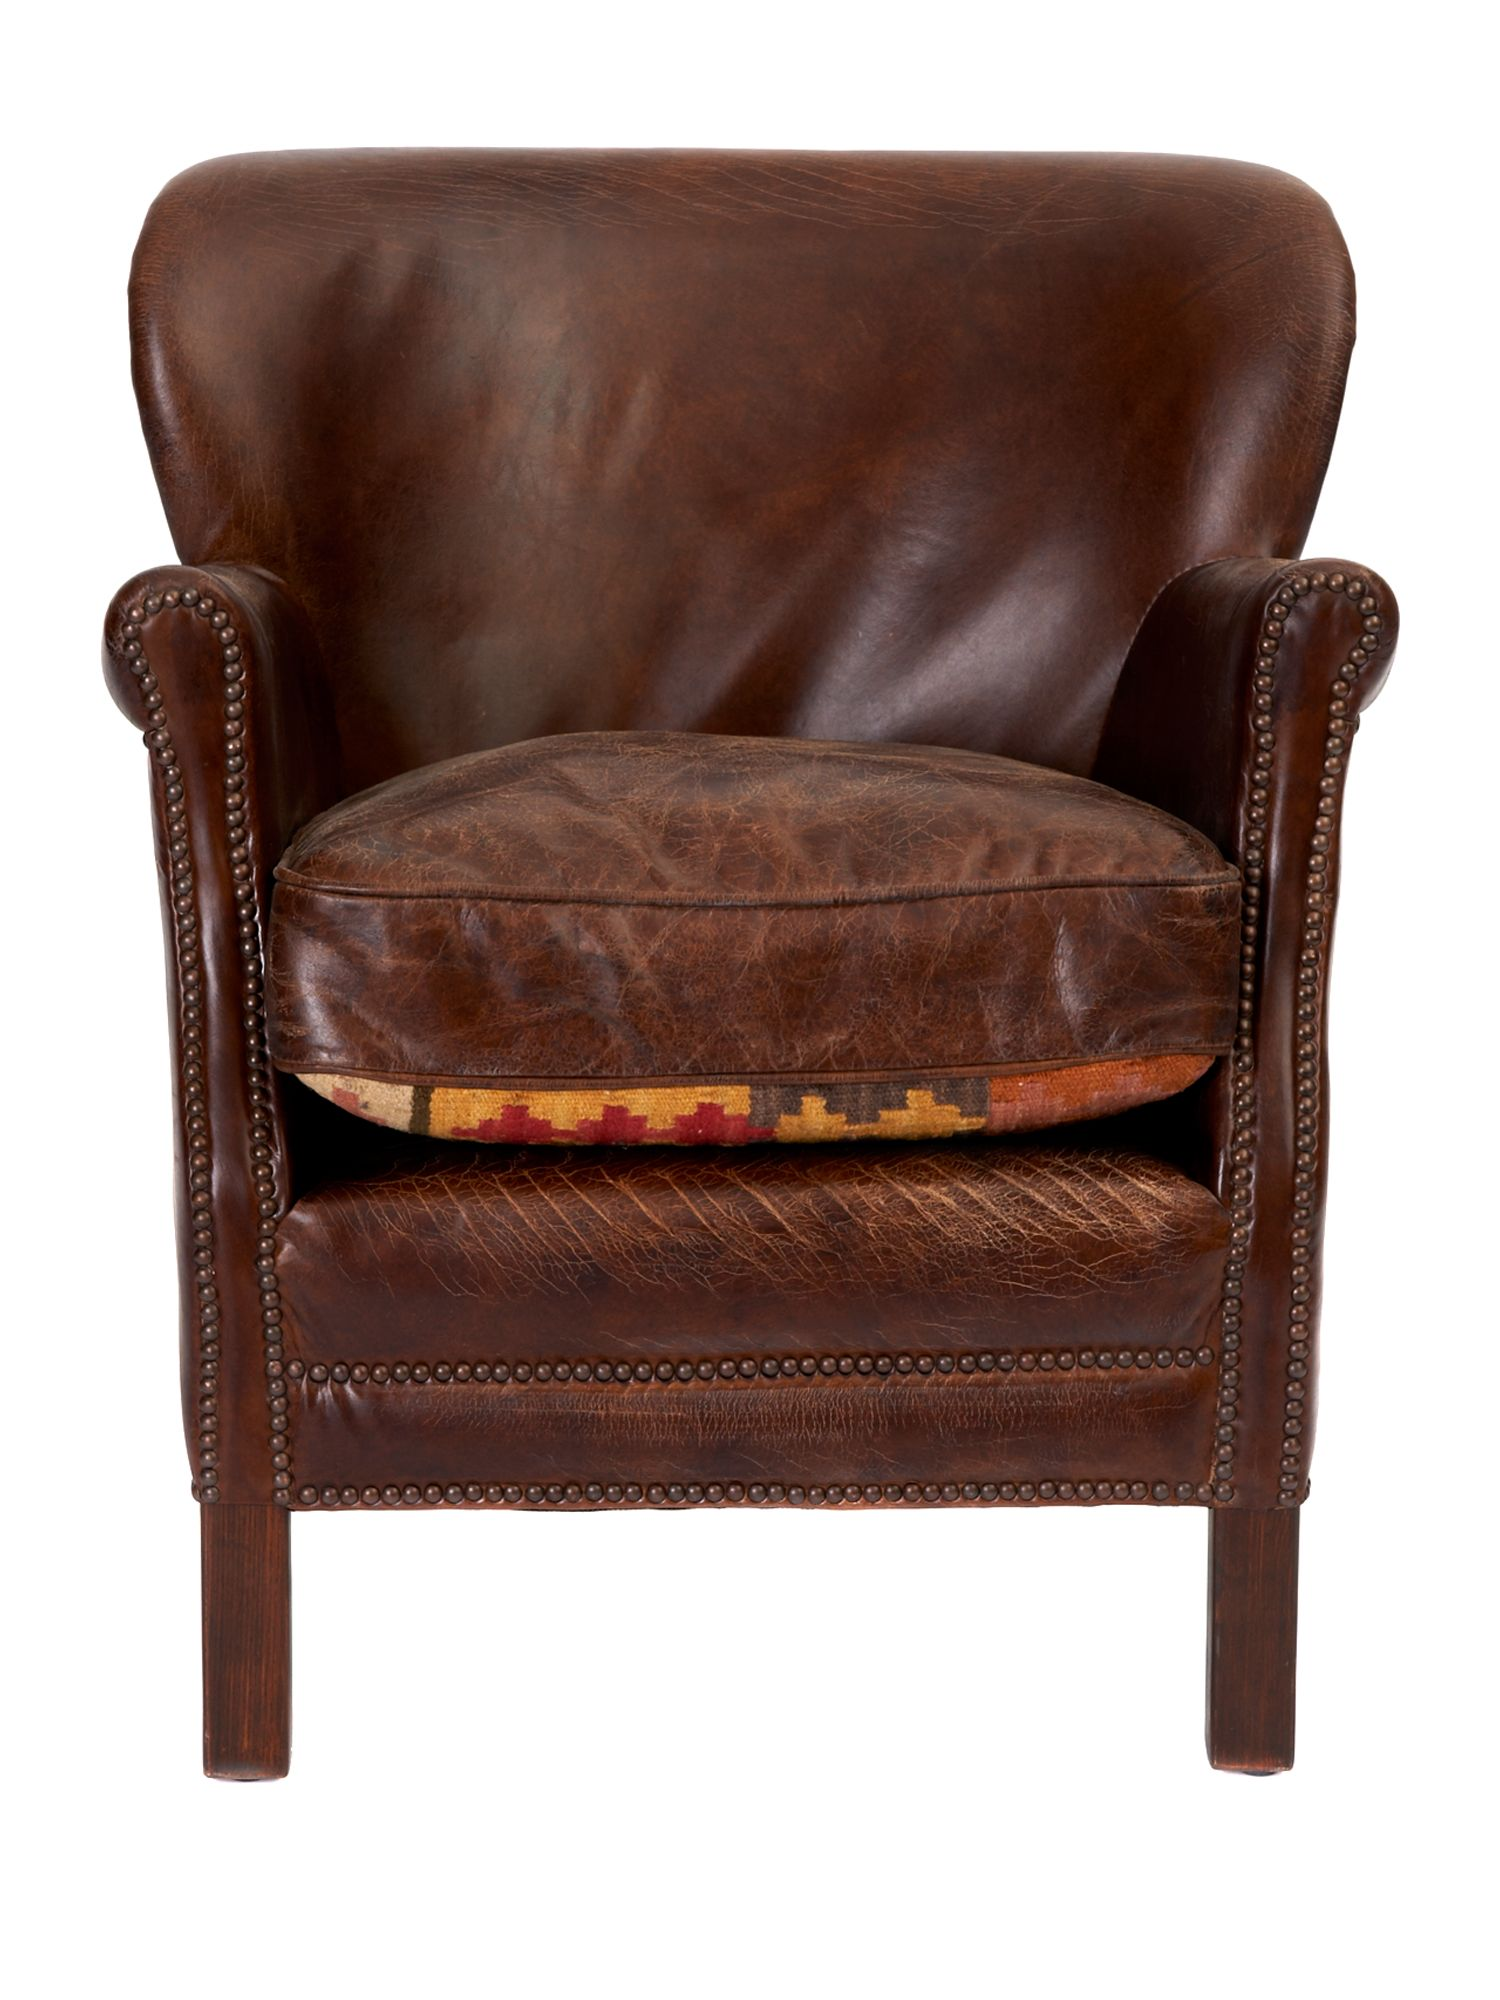 Professor chair Vintage Cigar